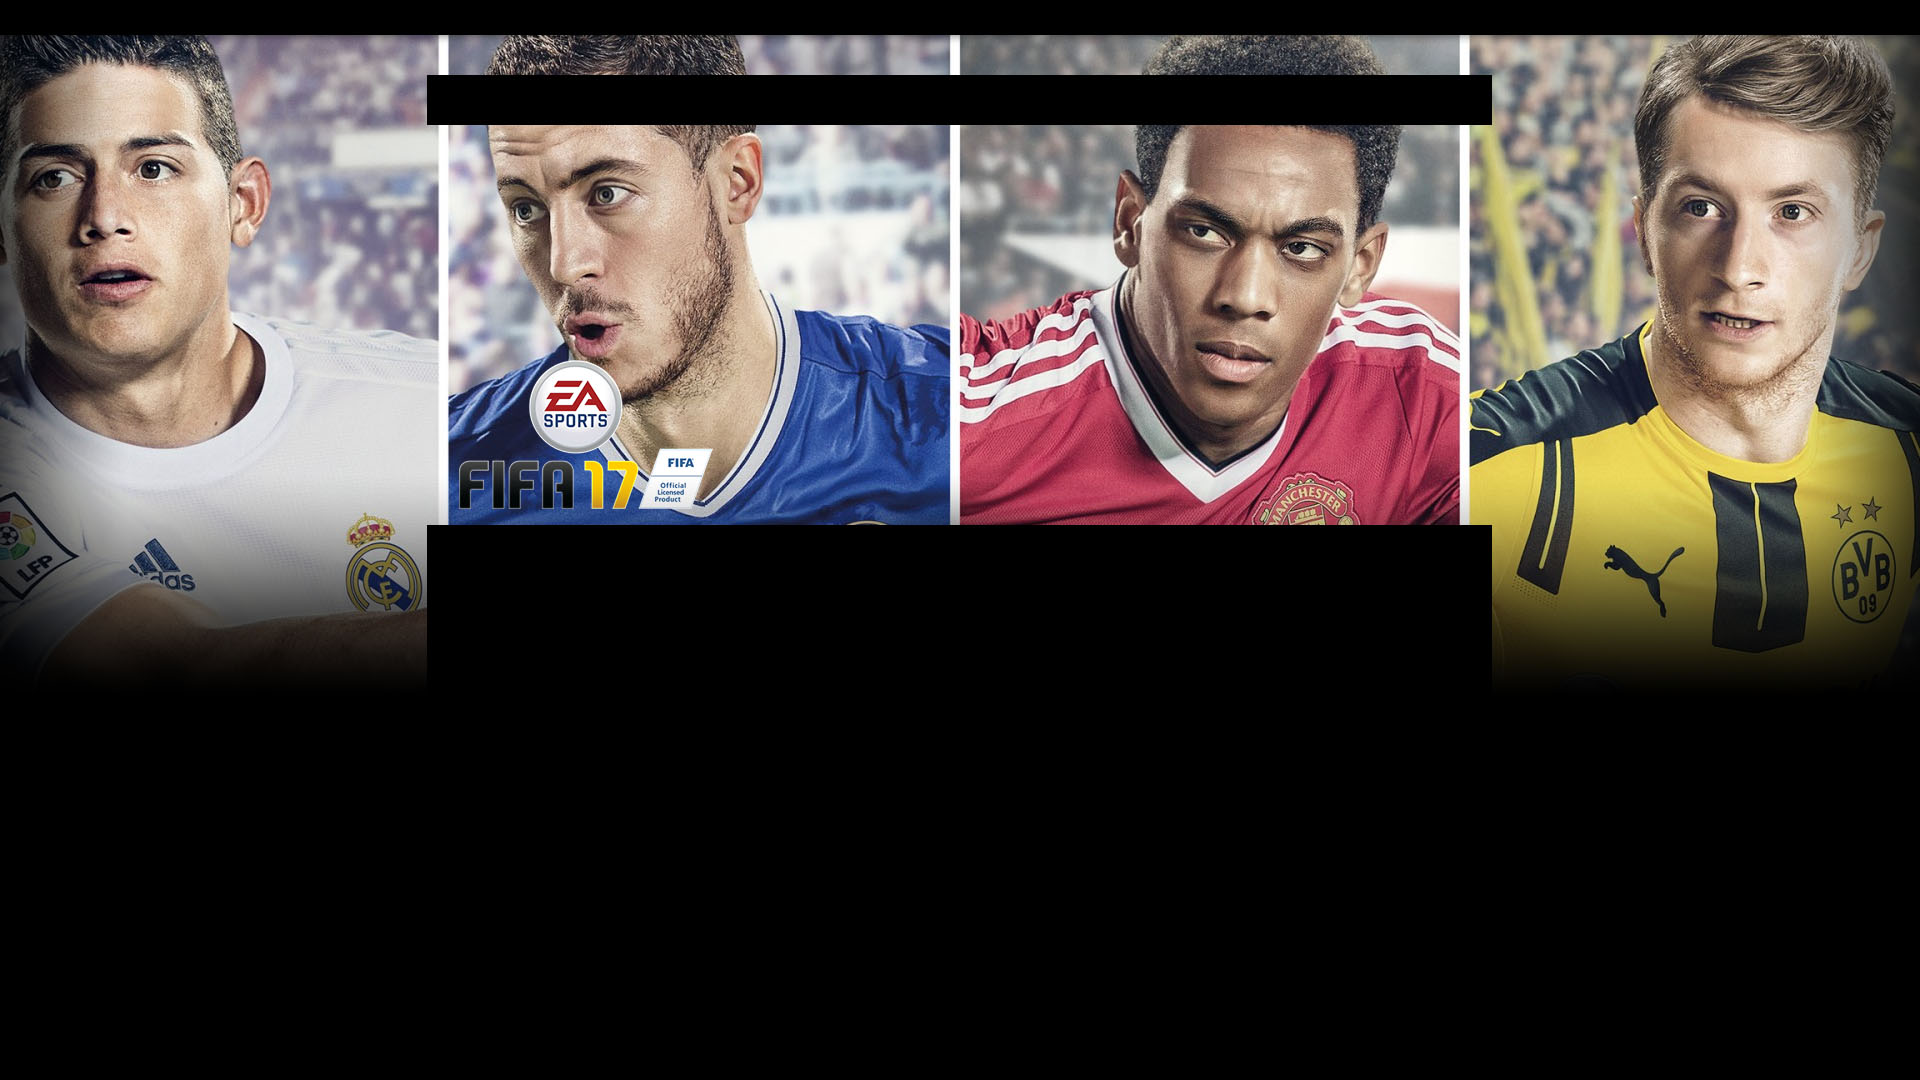 FIFA 17 [PC/PS/XBOX] video game